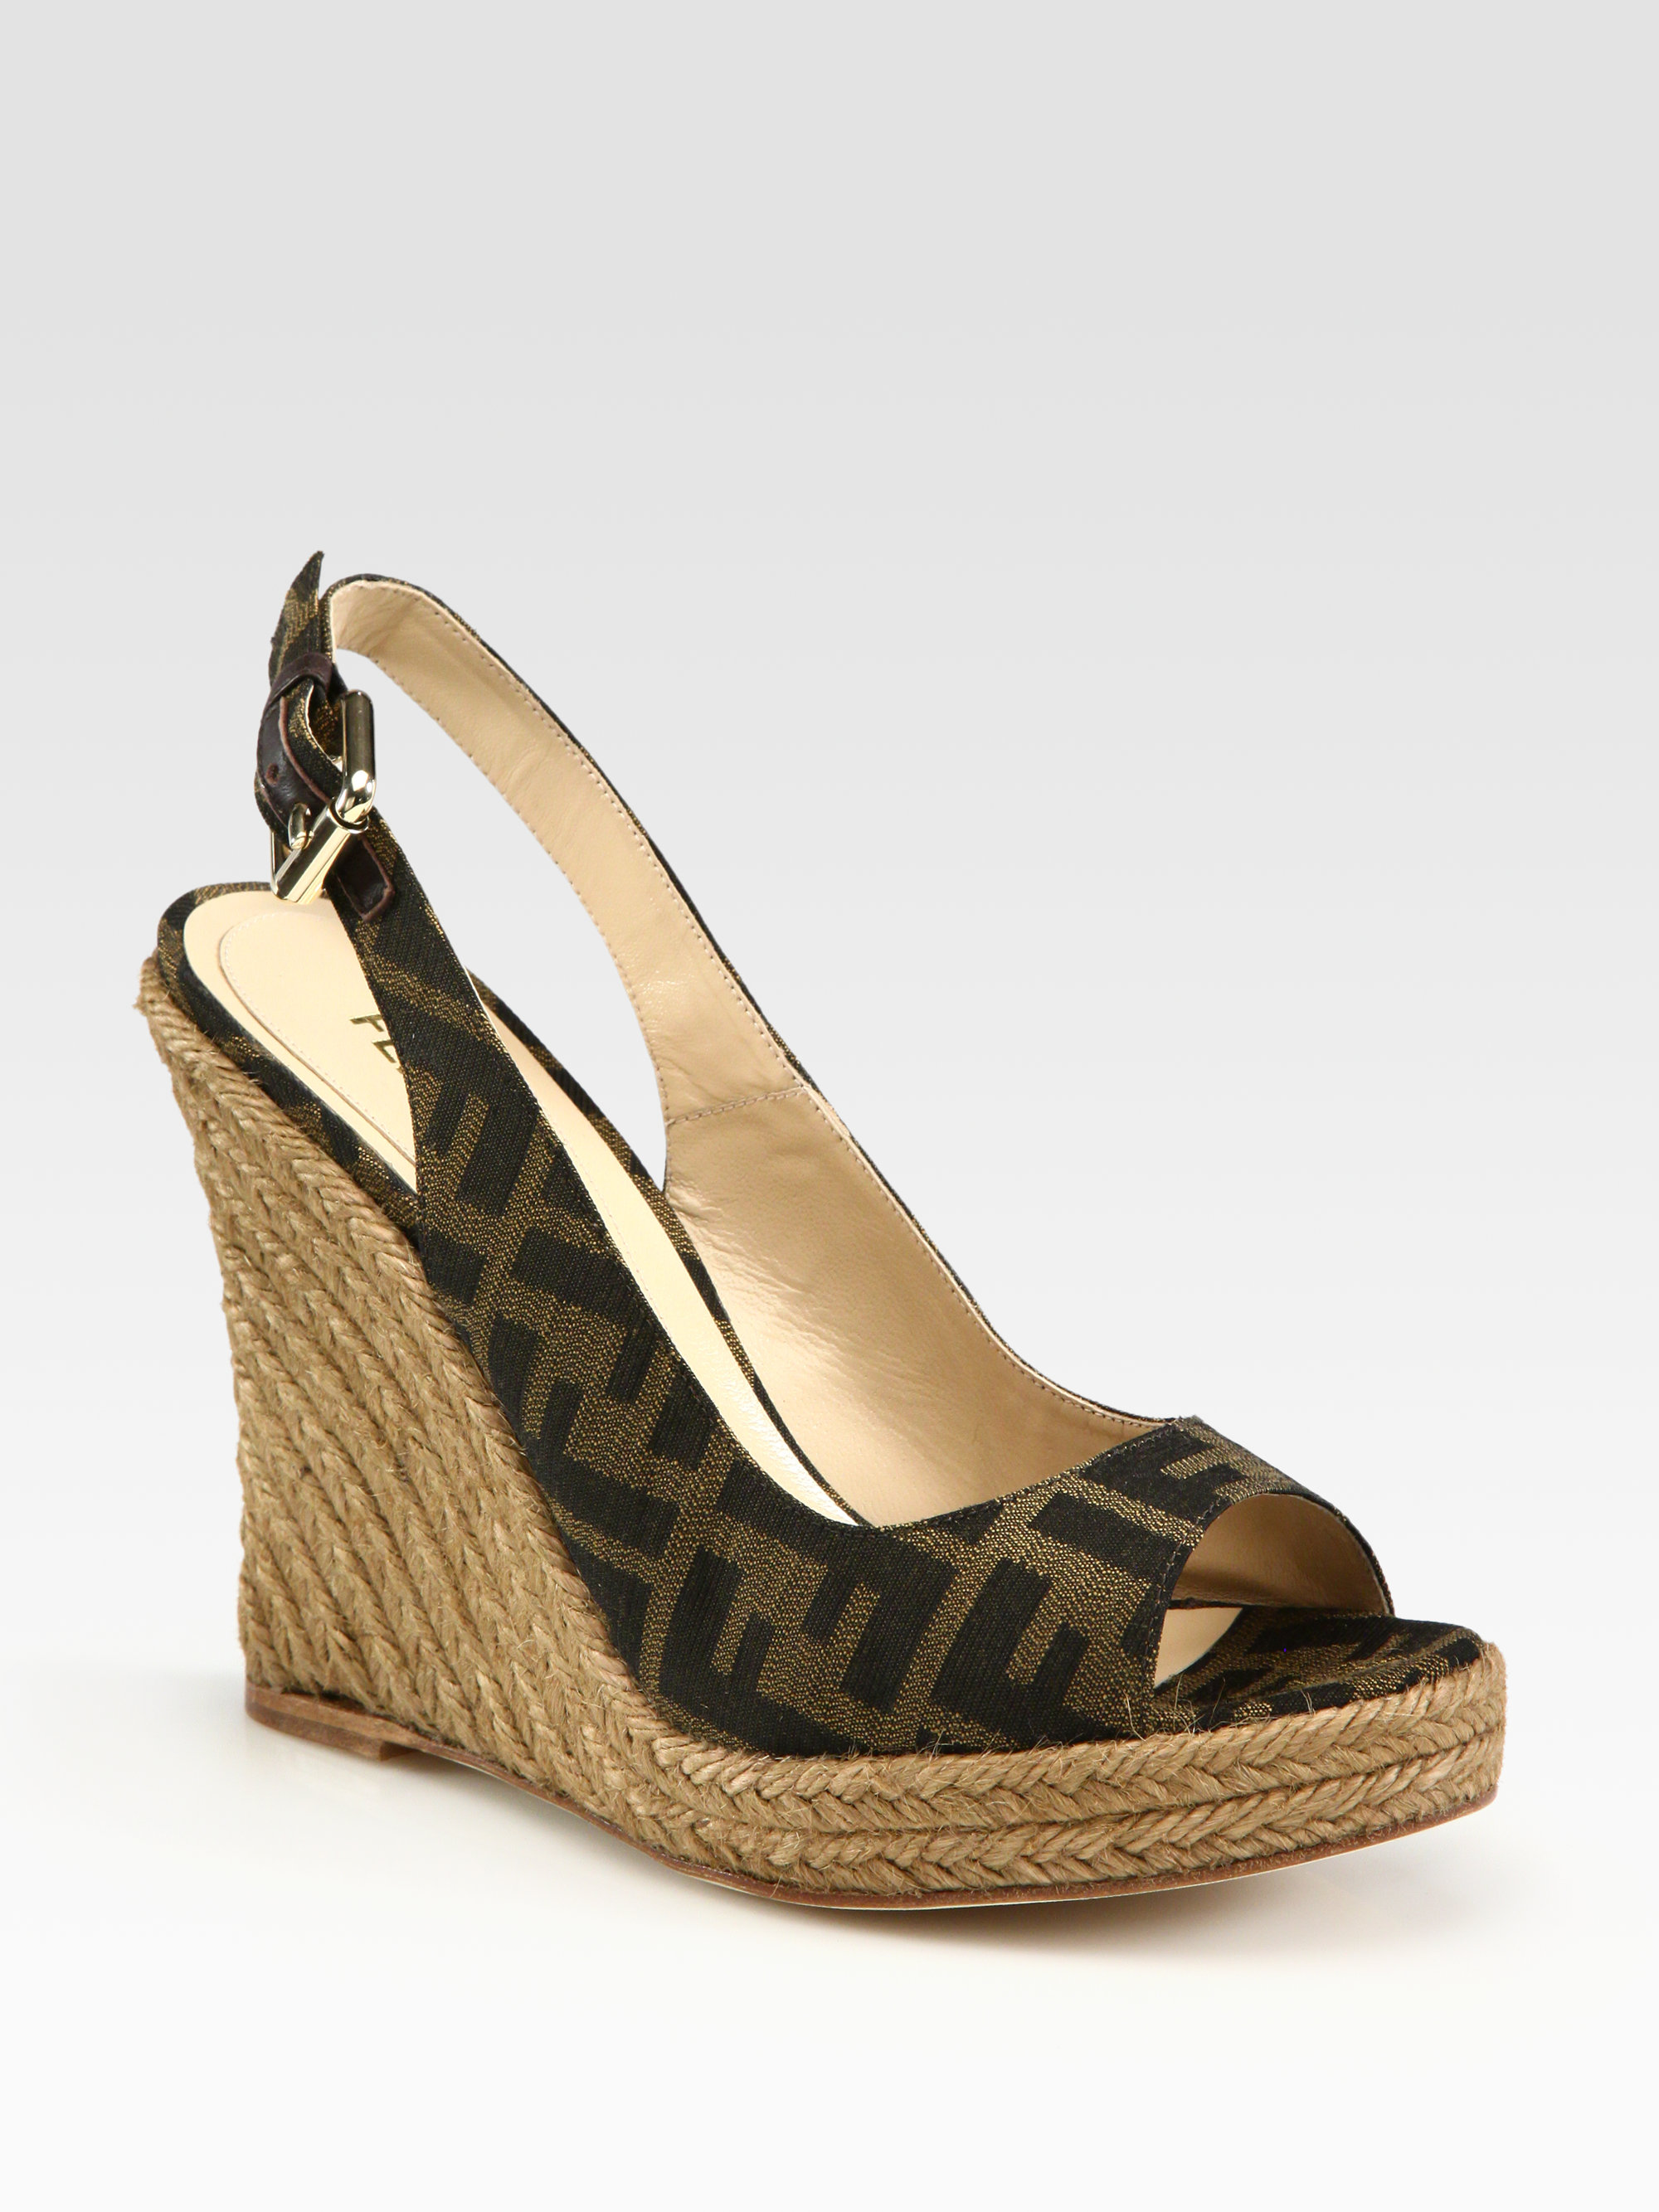 d7899883be3 Lyst - Fendi Monogram Canvas Slingback Espadrille Wedge Sandals in Brown